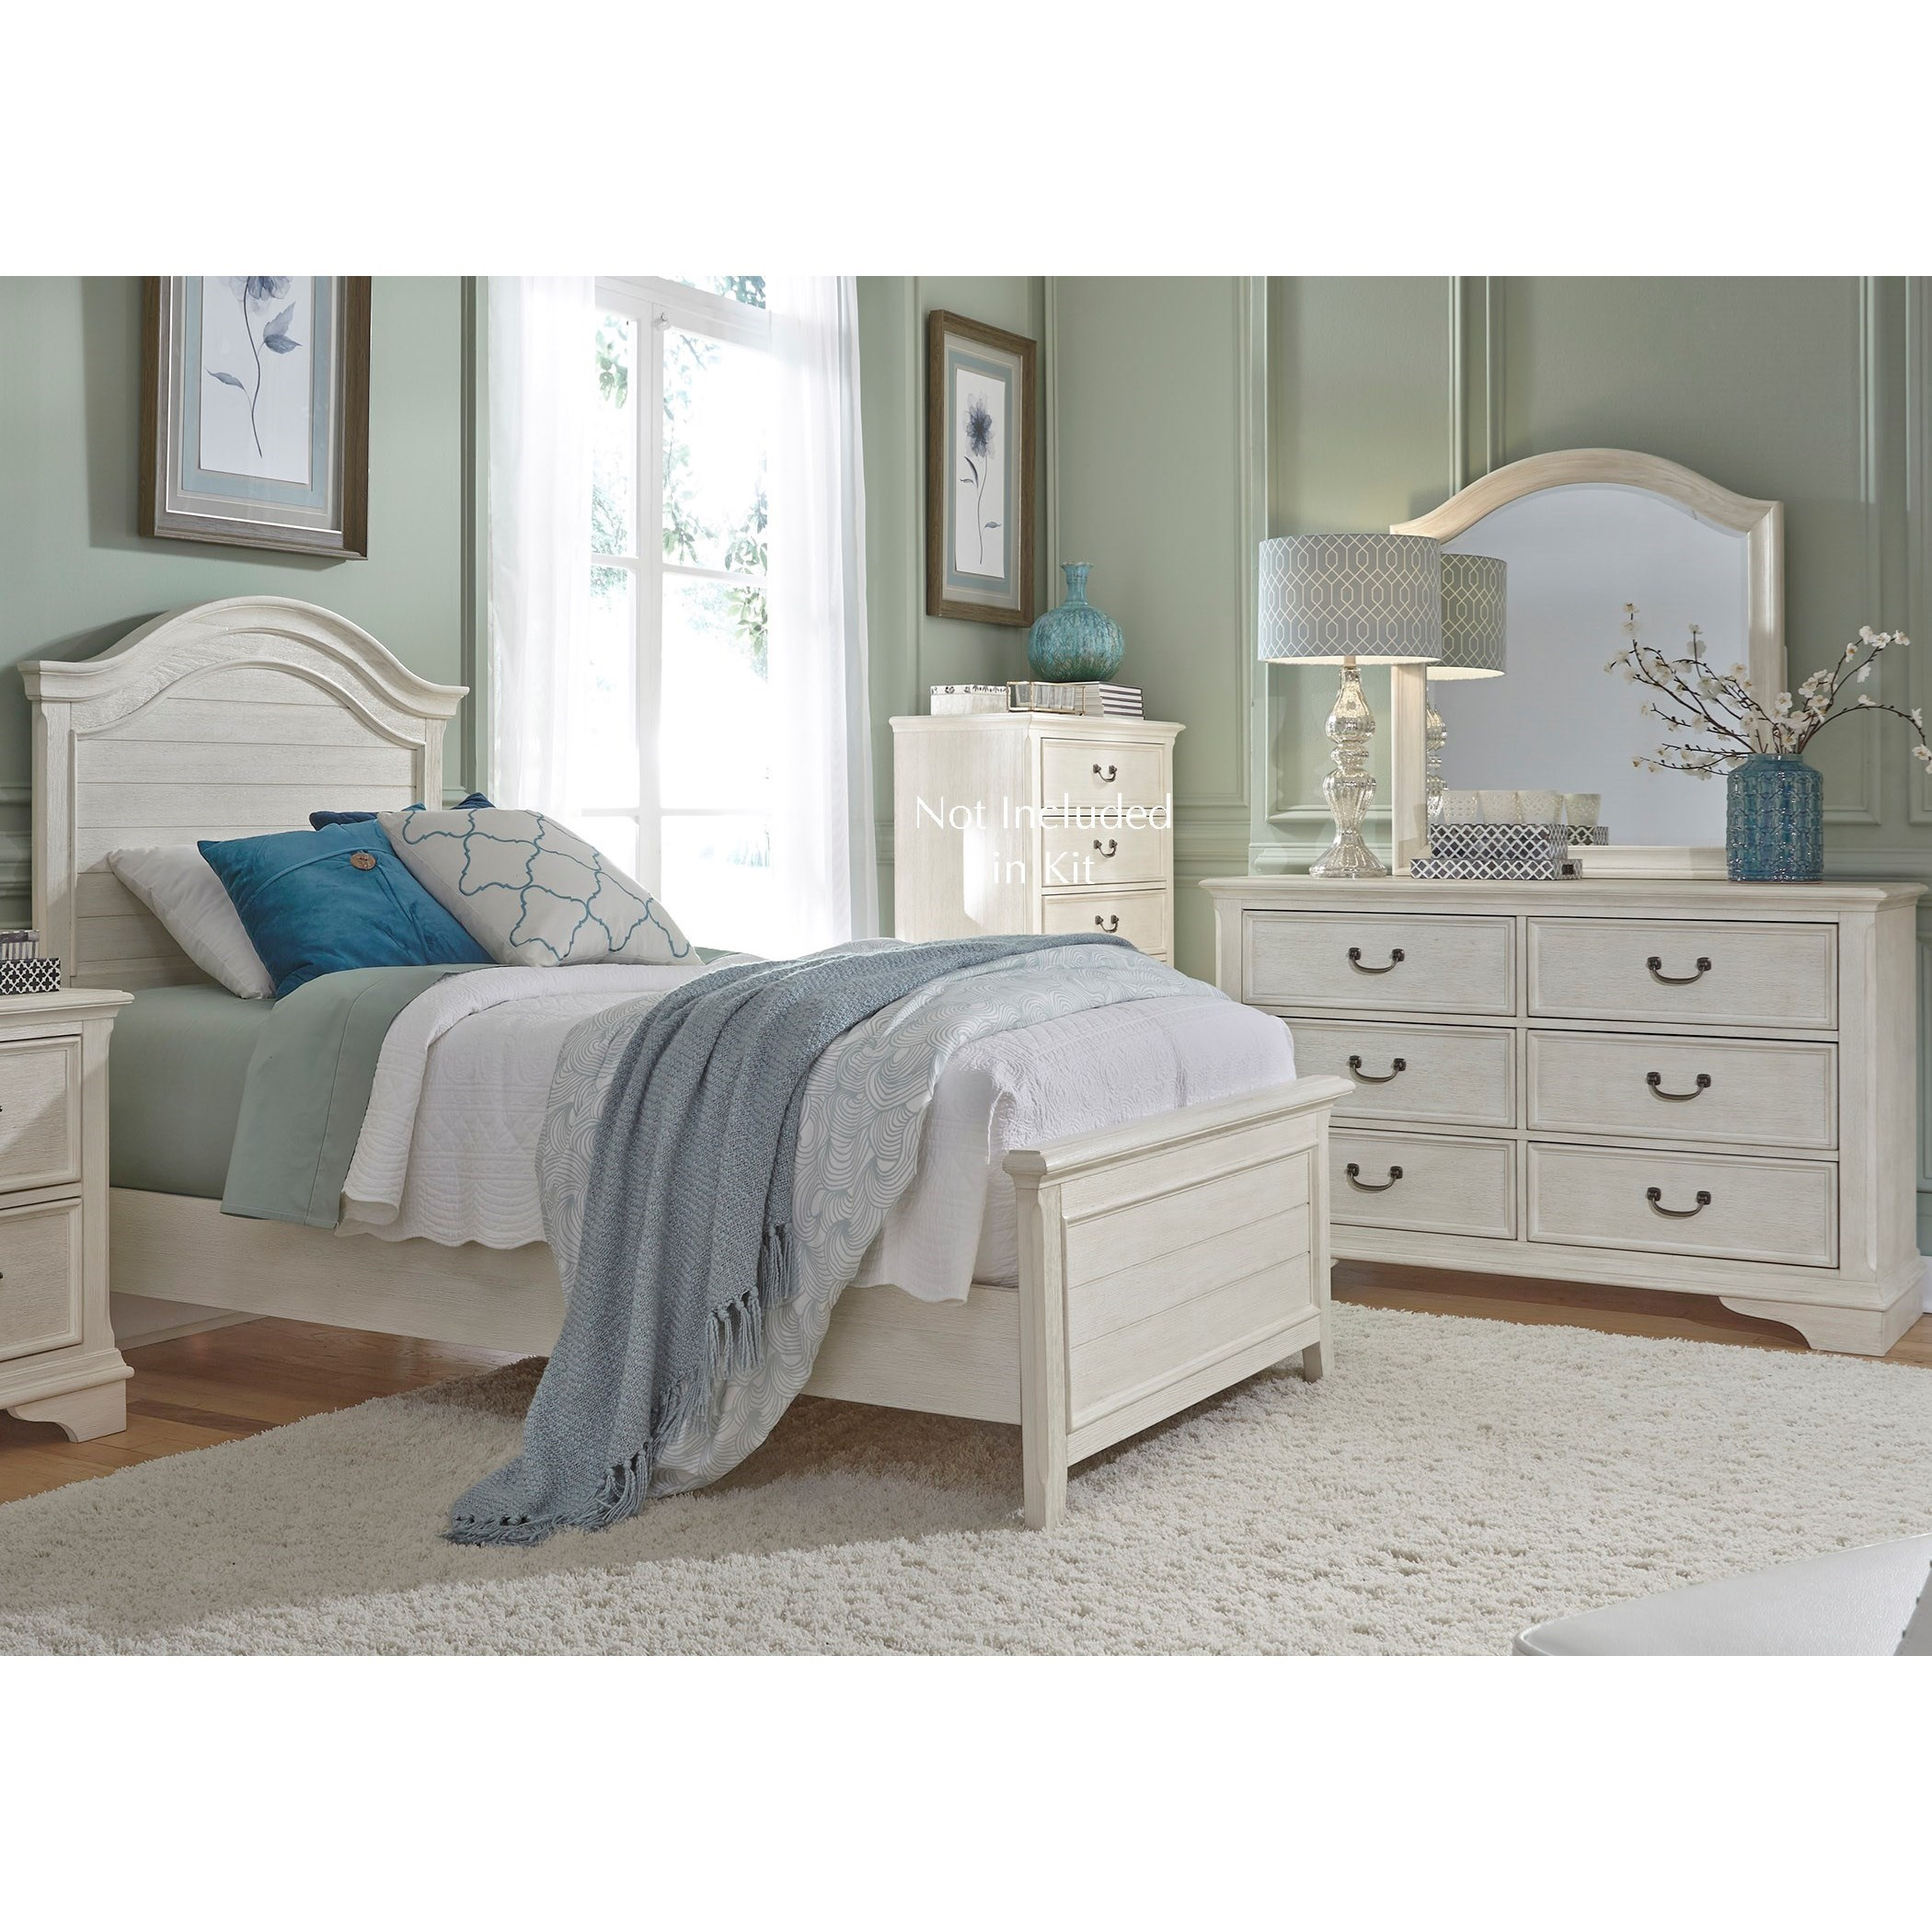 Bayside Bedroom Full Bedroom Group by Liberty Furniture at SuperStore